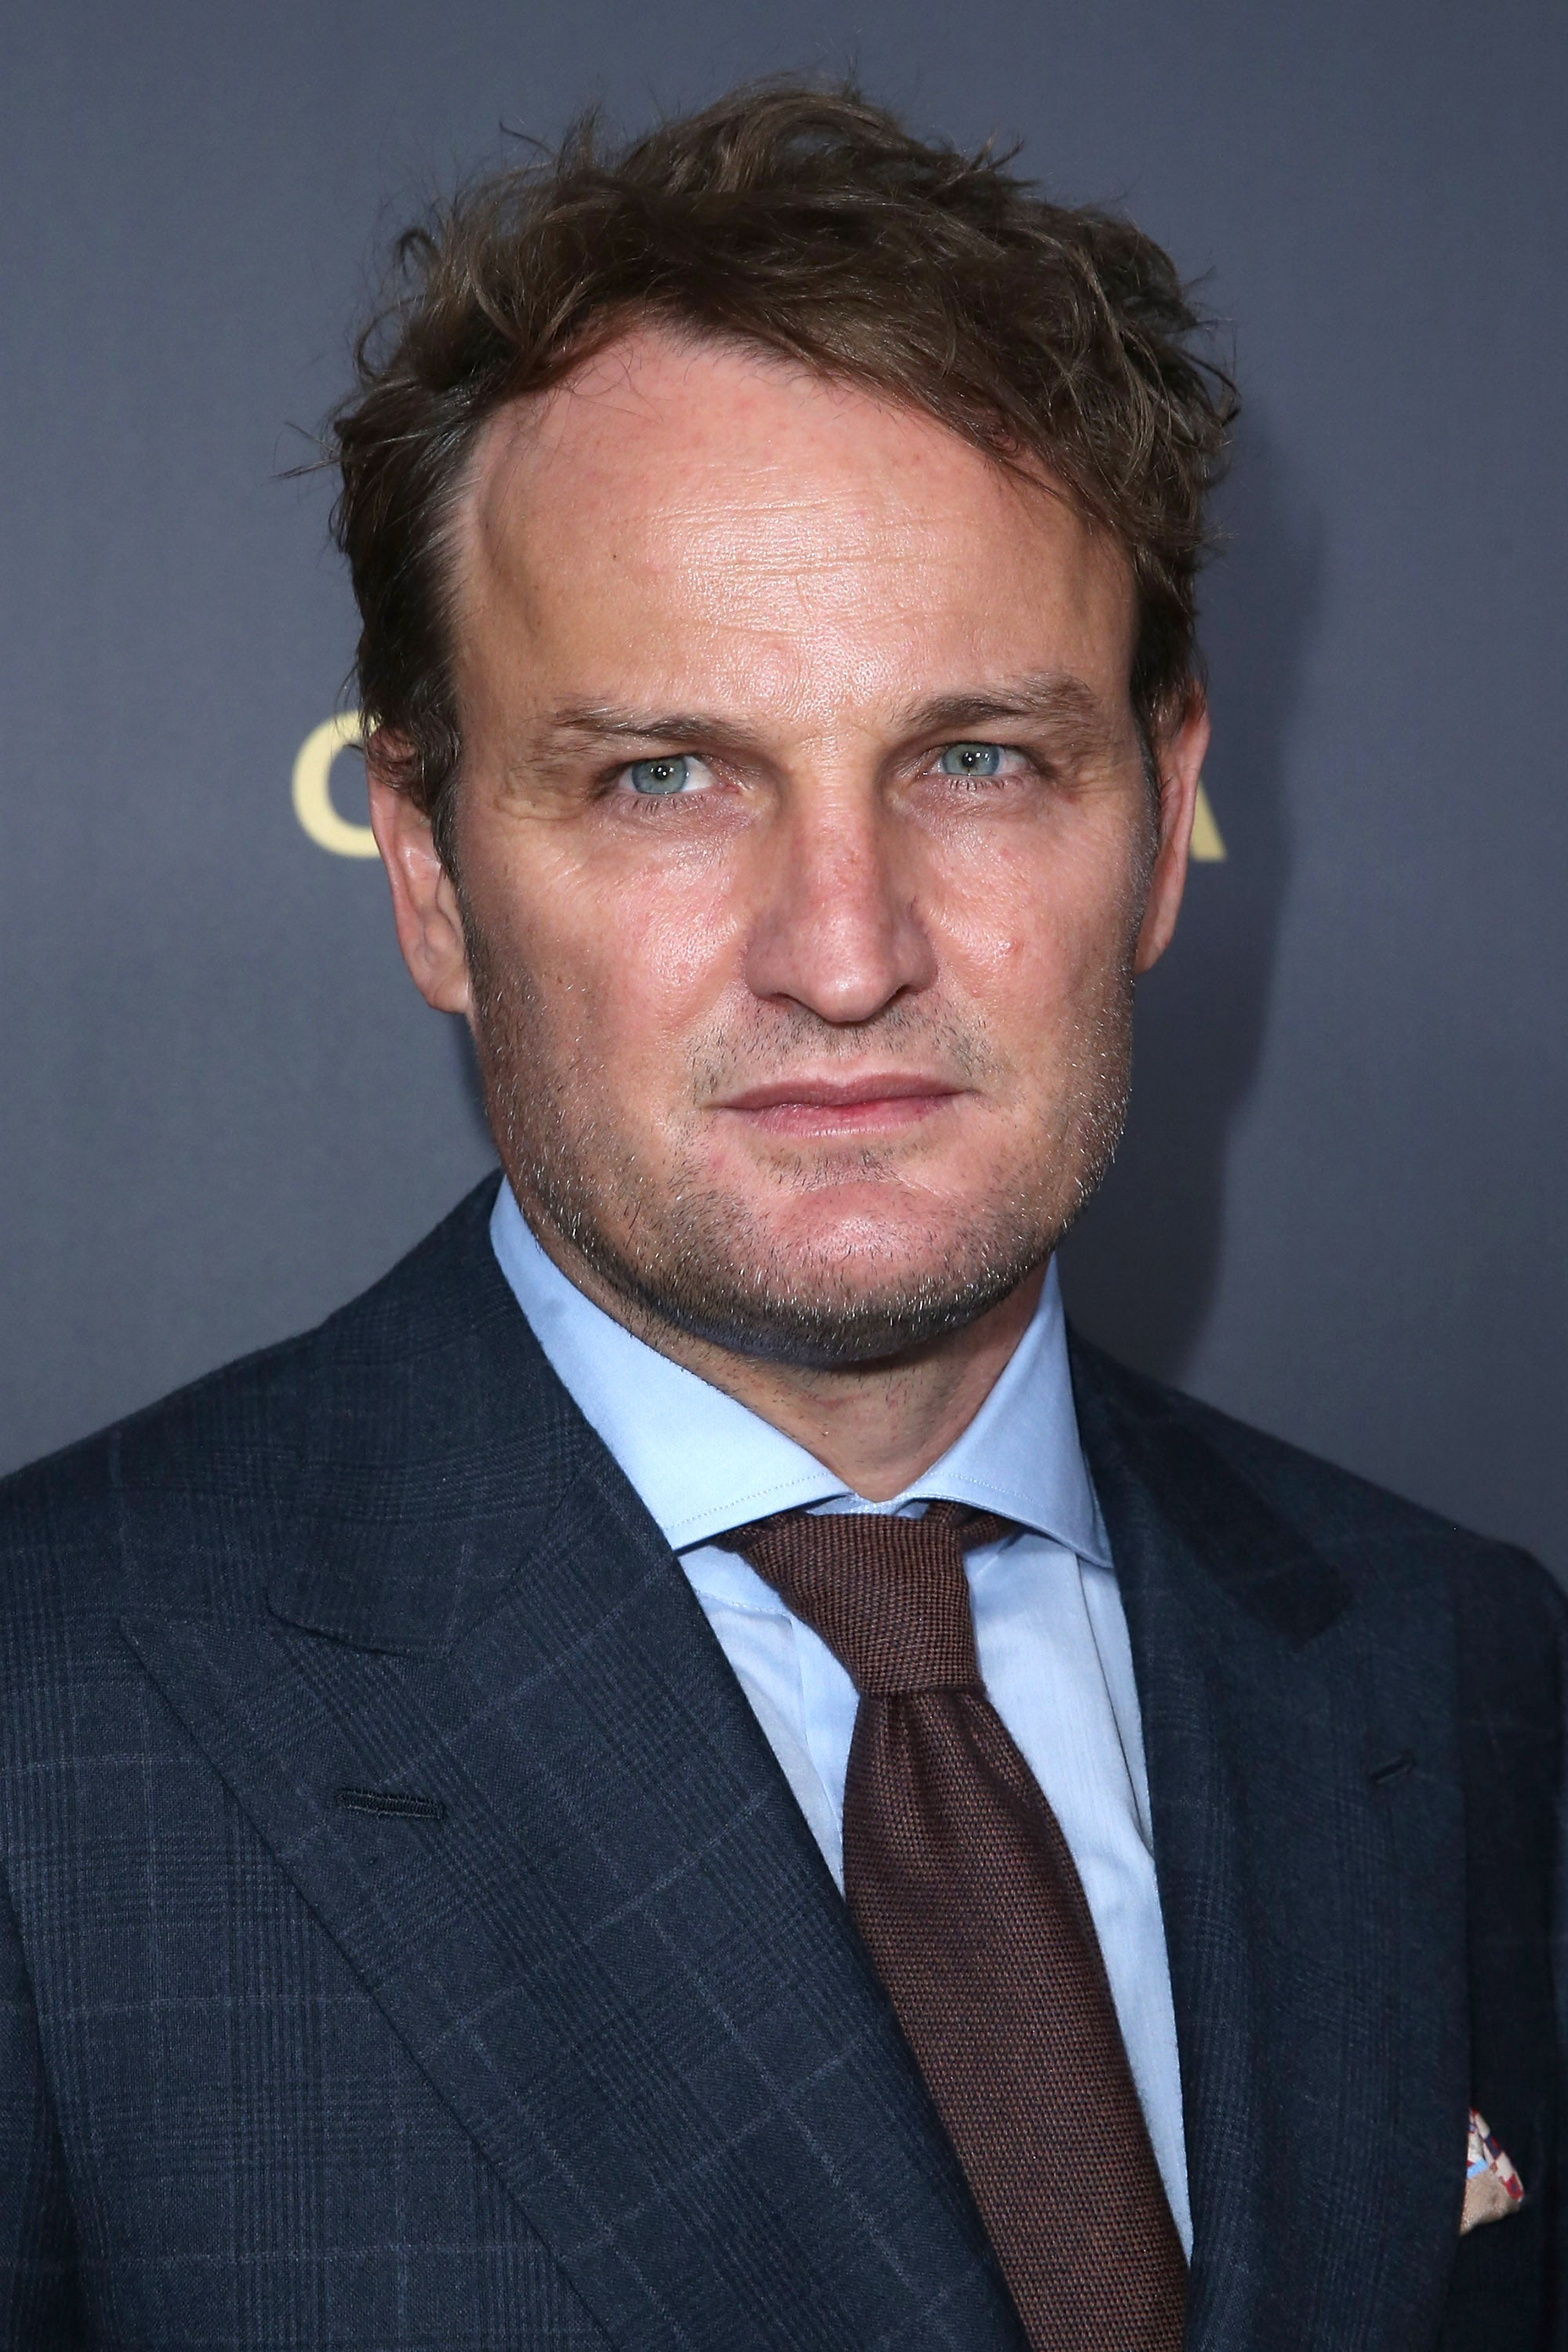 LOS ANGELES, CA - JANUARY 28: Jason Clarke attends the 2016 G'Day Los Angeles Gala at Vibiana on January 28, 2016 in Los Angeles, California. (Photo by Jonathan Leibson/Getty Images)